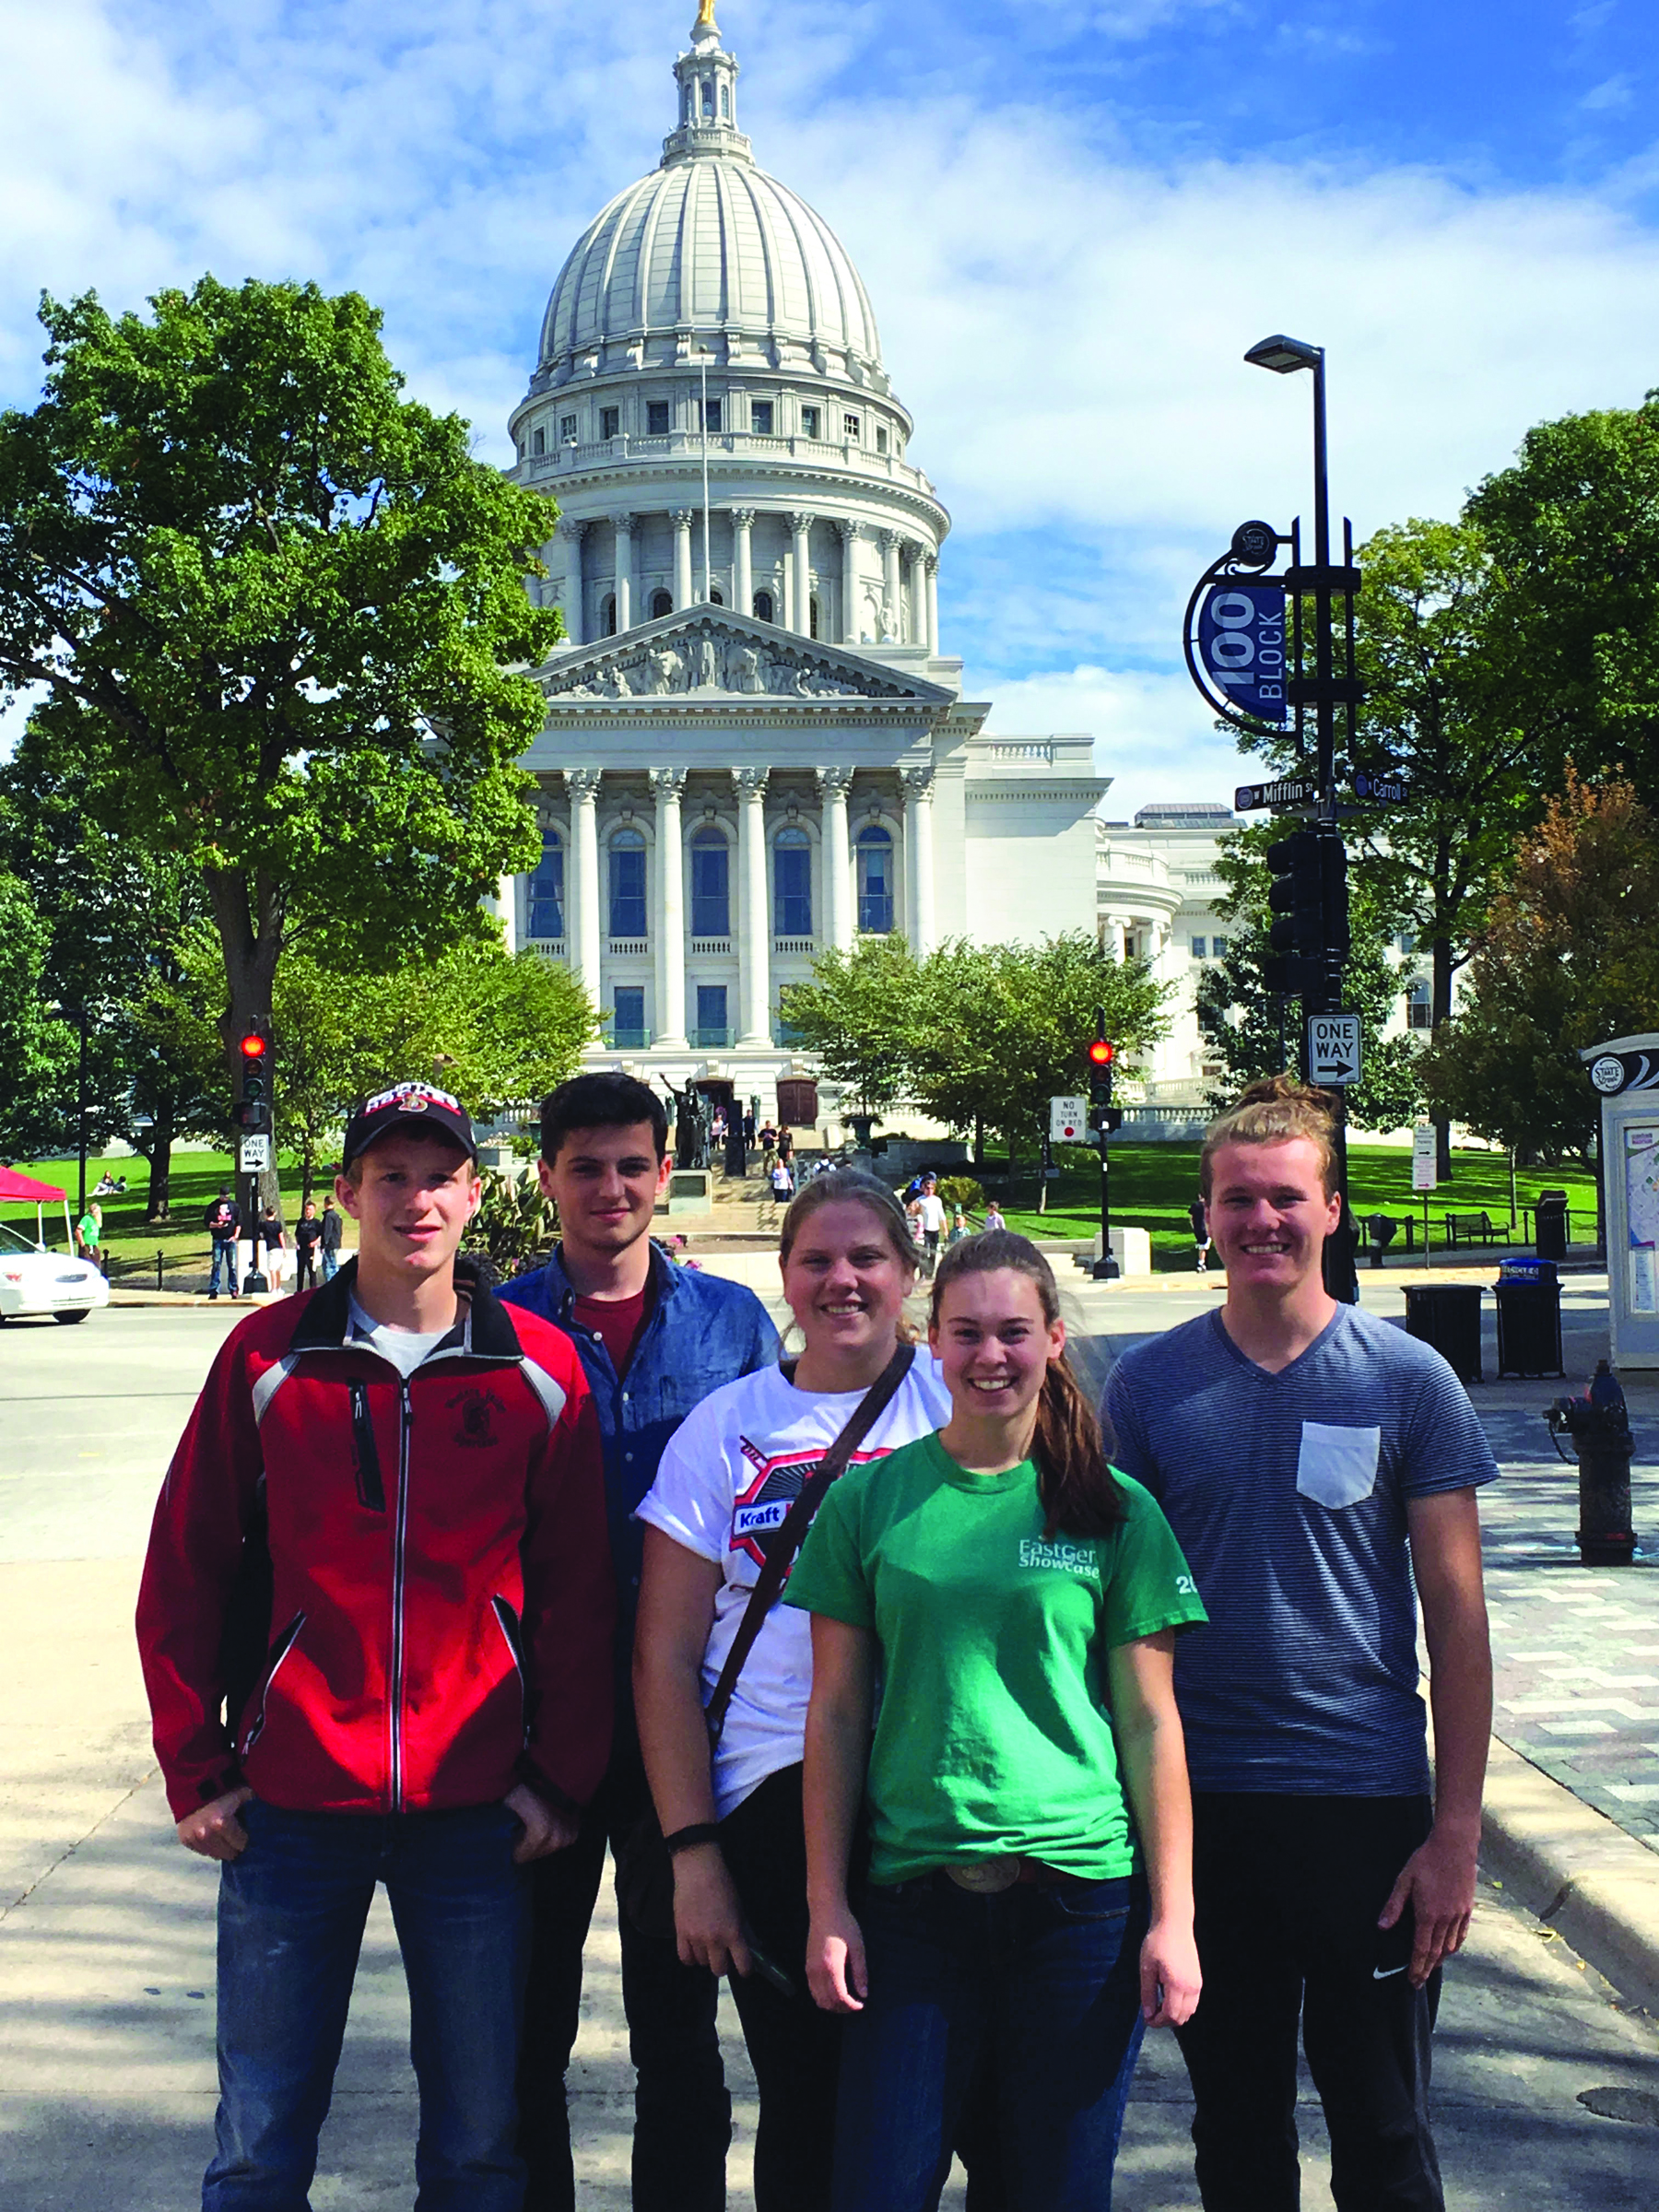 From left, Adrian Bent, Reilly Riordin, Nicolle MacDonald, Grace Hughes, and Brogan Keenan in front of the Capitol building in Madison, Wis. (Submitted photo)